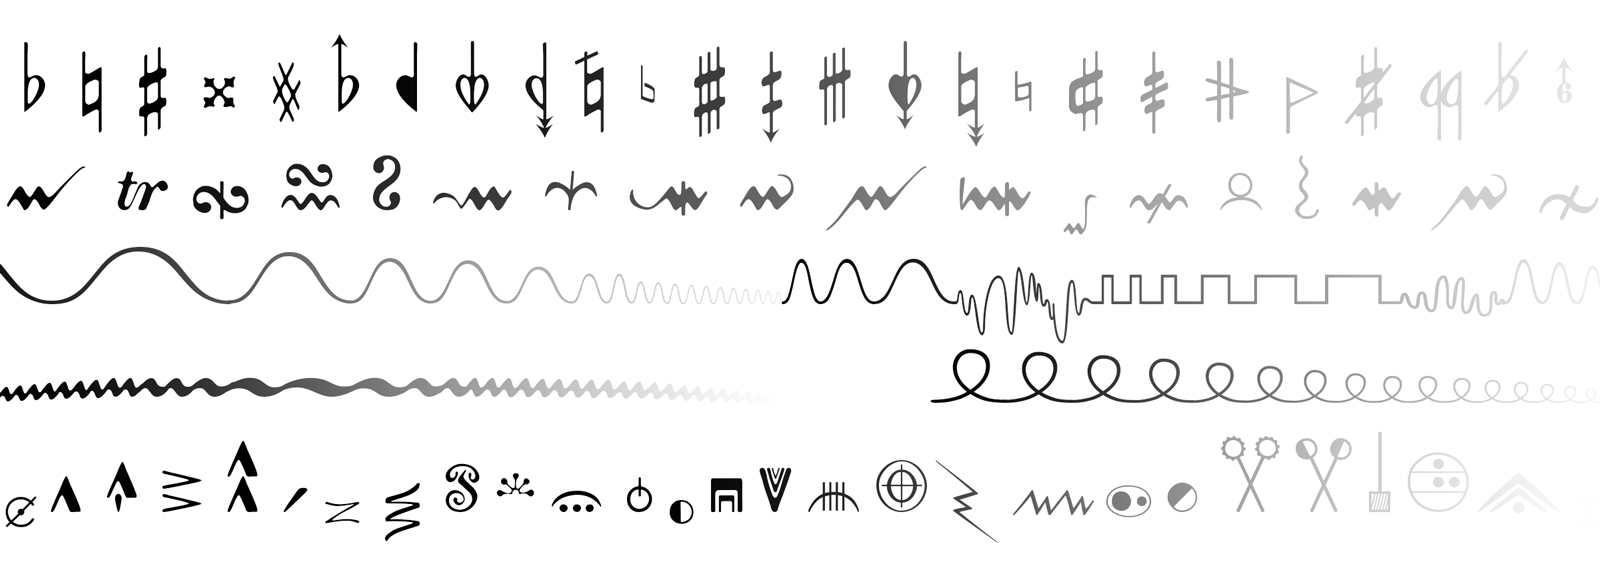 strip_many_glyphs